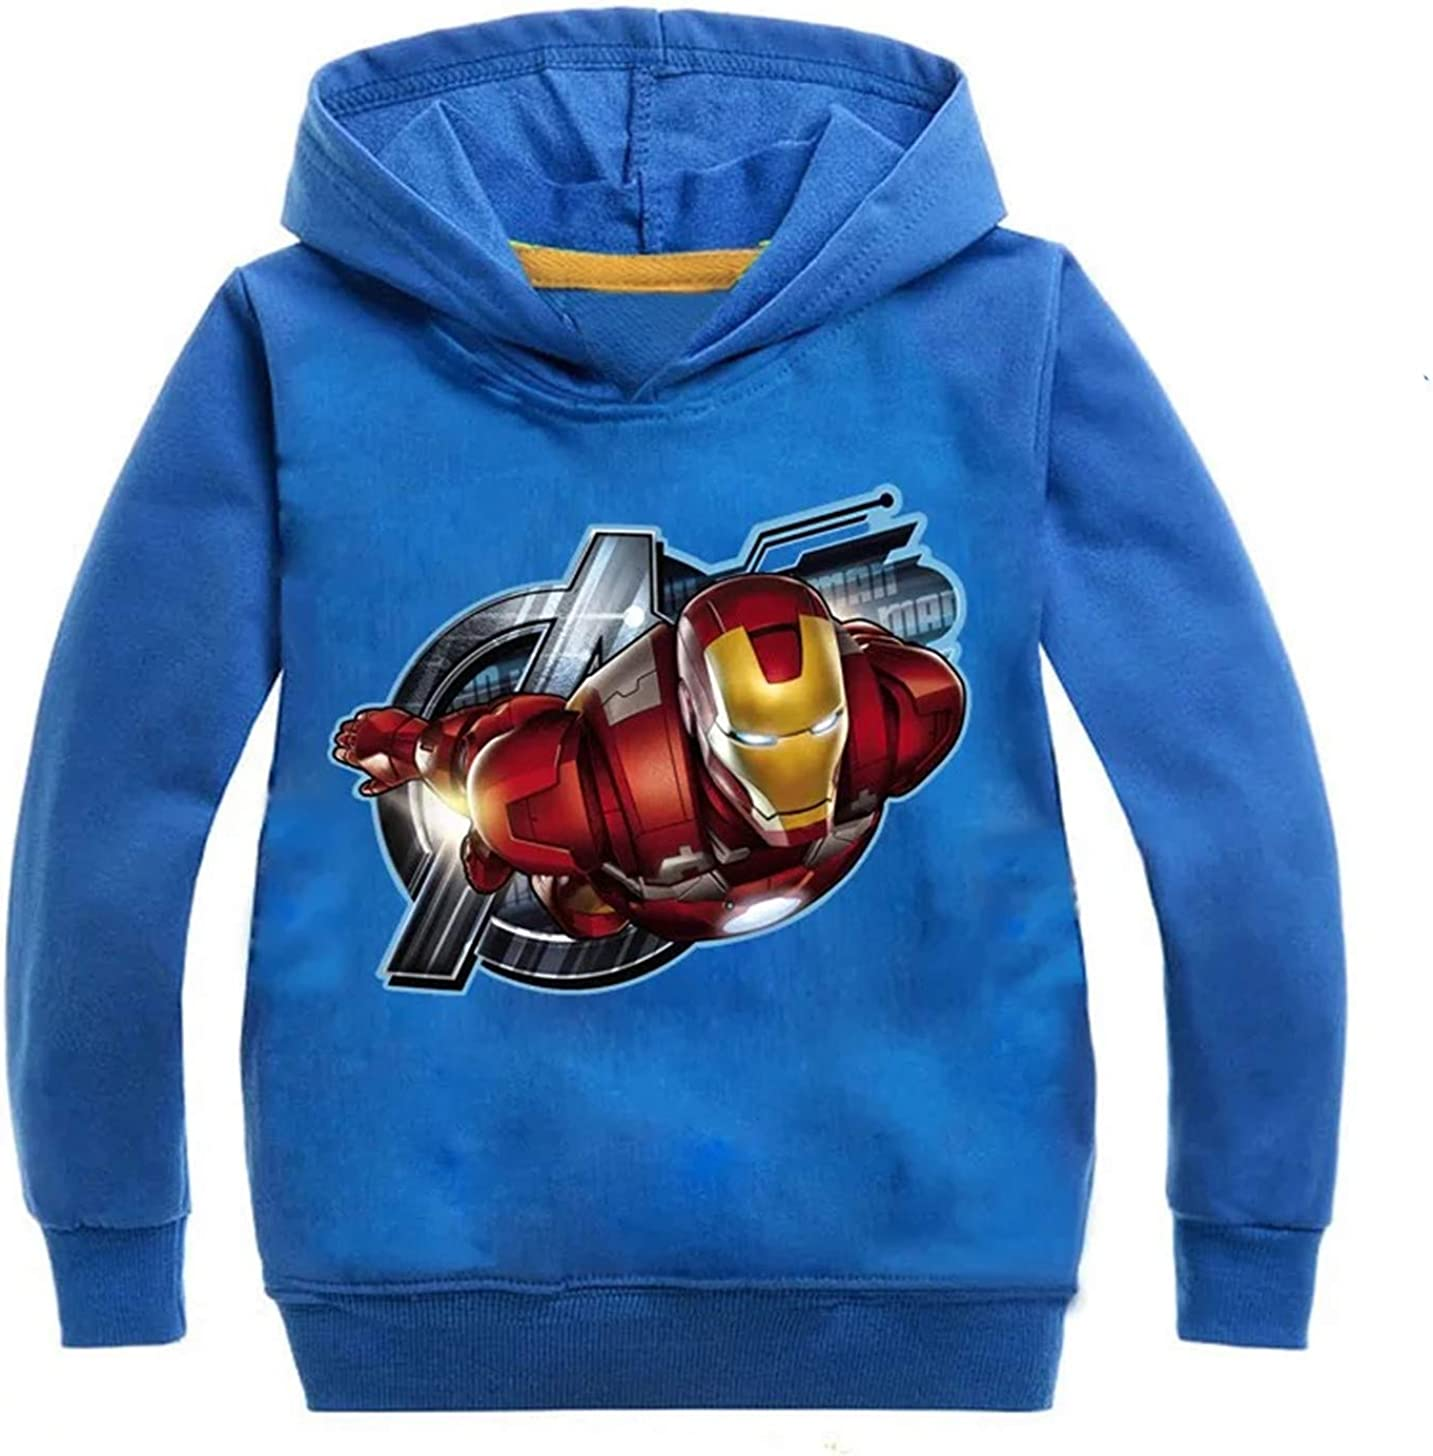 2T-14 Years KK-Jim Kids Iron Man Pullover Hoodies-Avengers End Game Sweatshirts Hooded Tops for Boys Girls